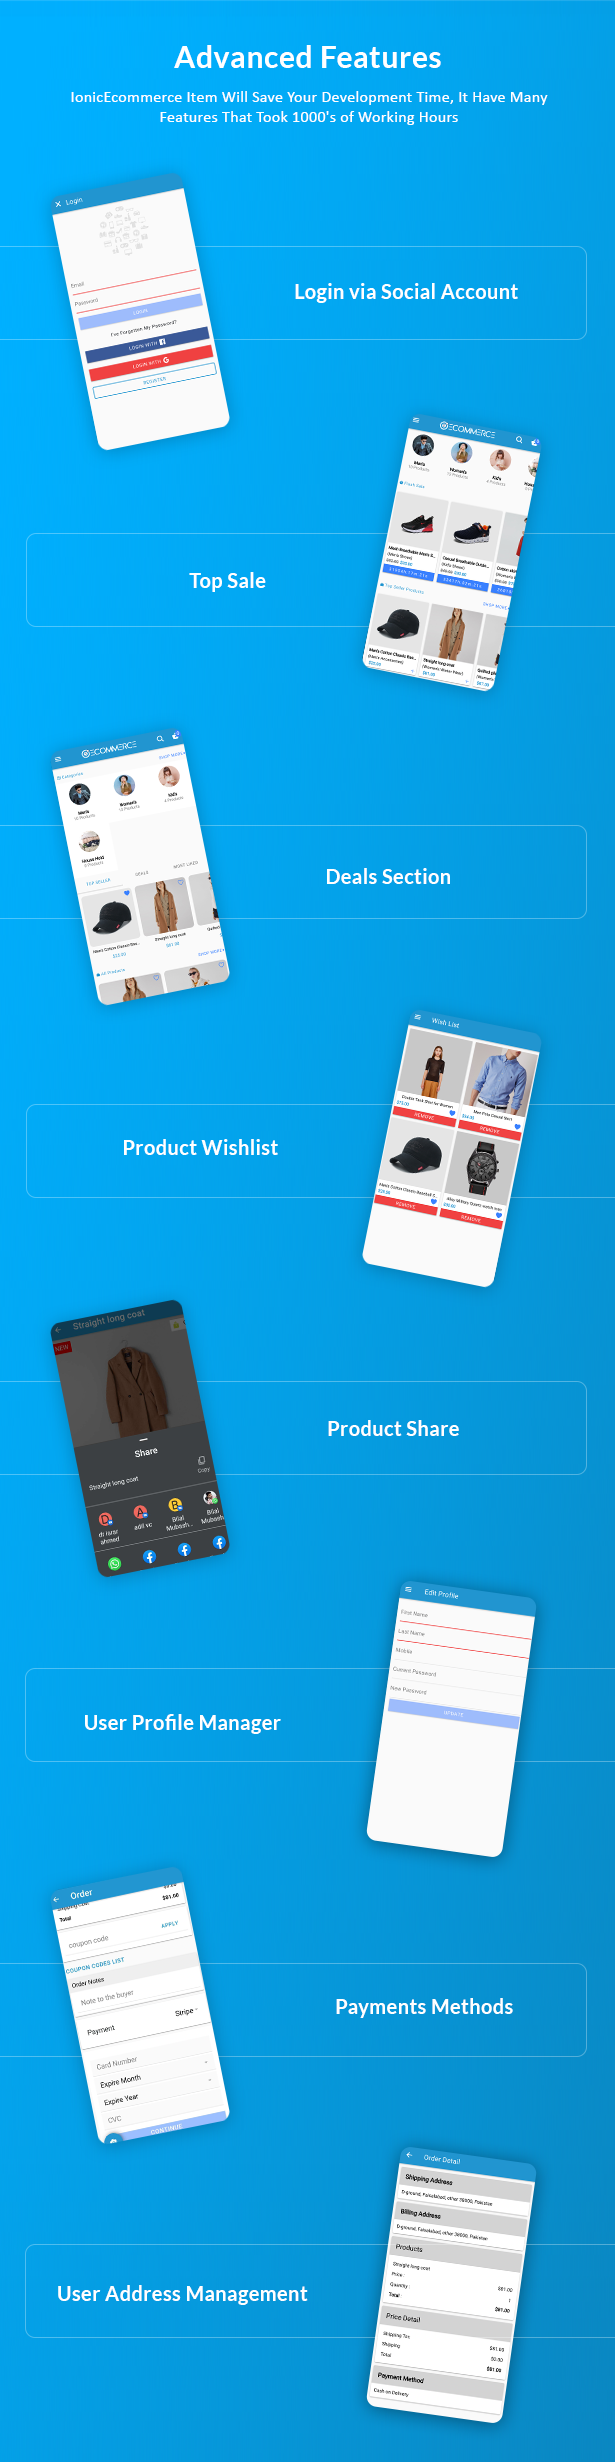 Ionic5 Ecommerce - Universal iOS & Android Ecommerce / Store Full Mobile App with Laravel CMS - 20